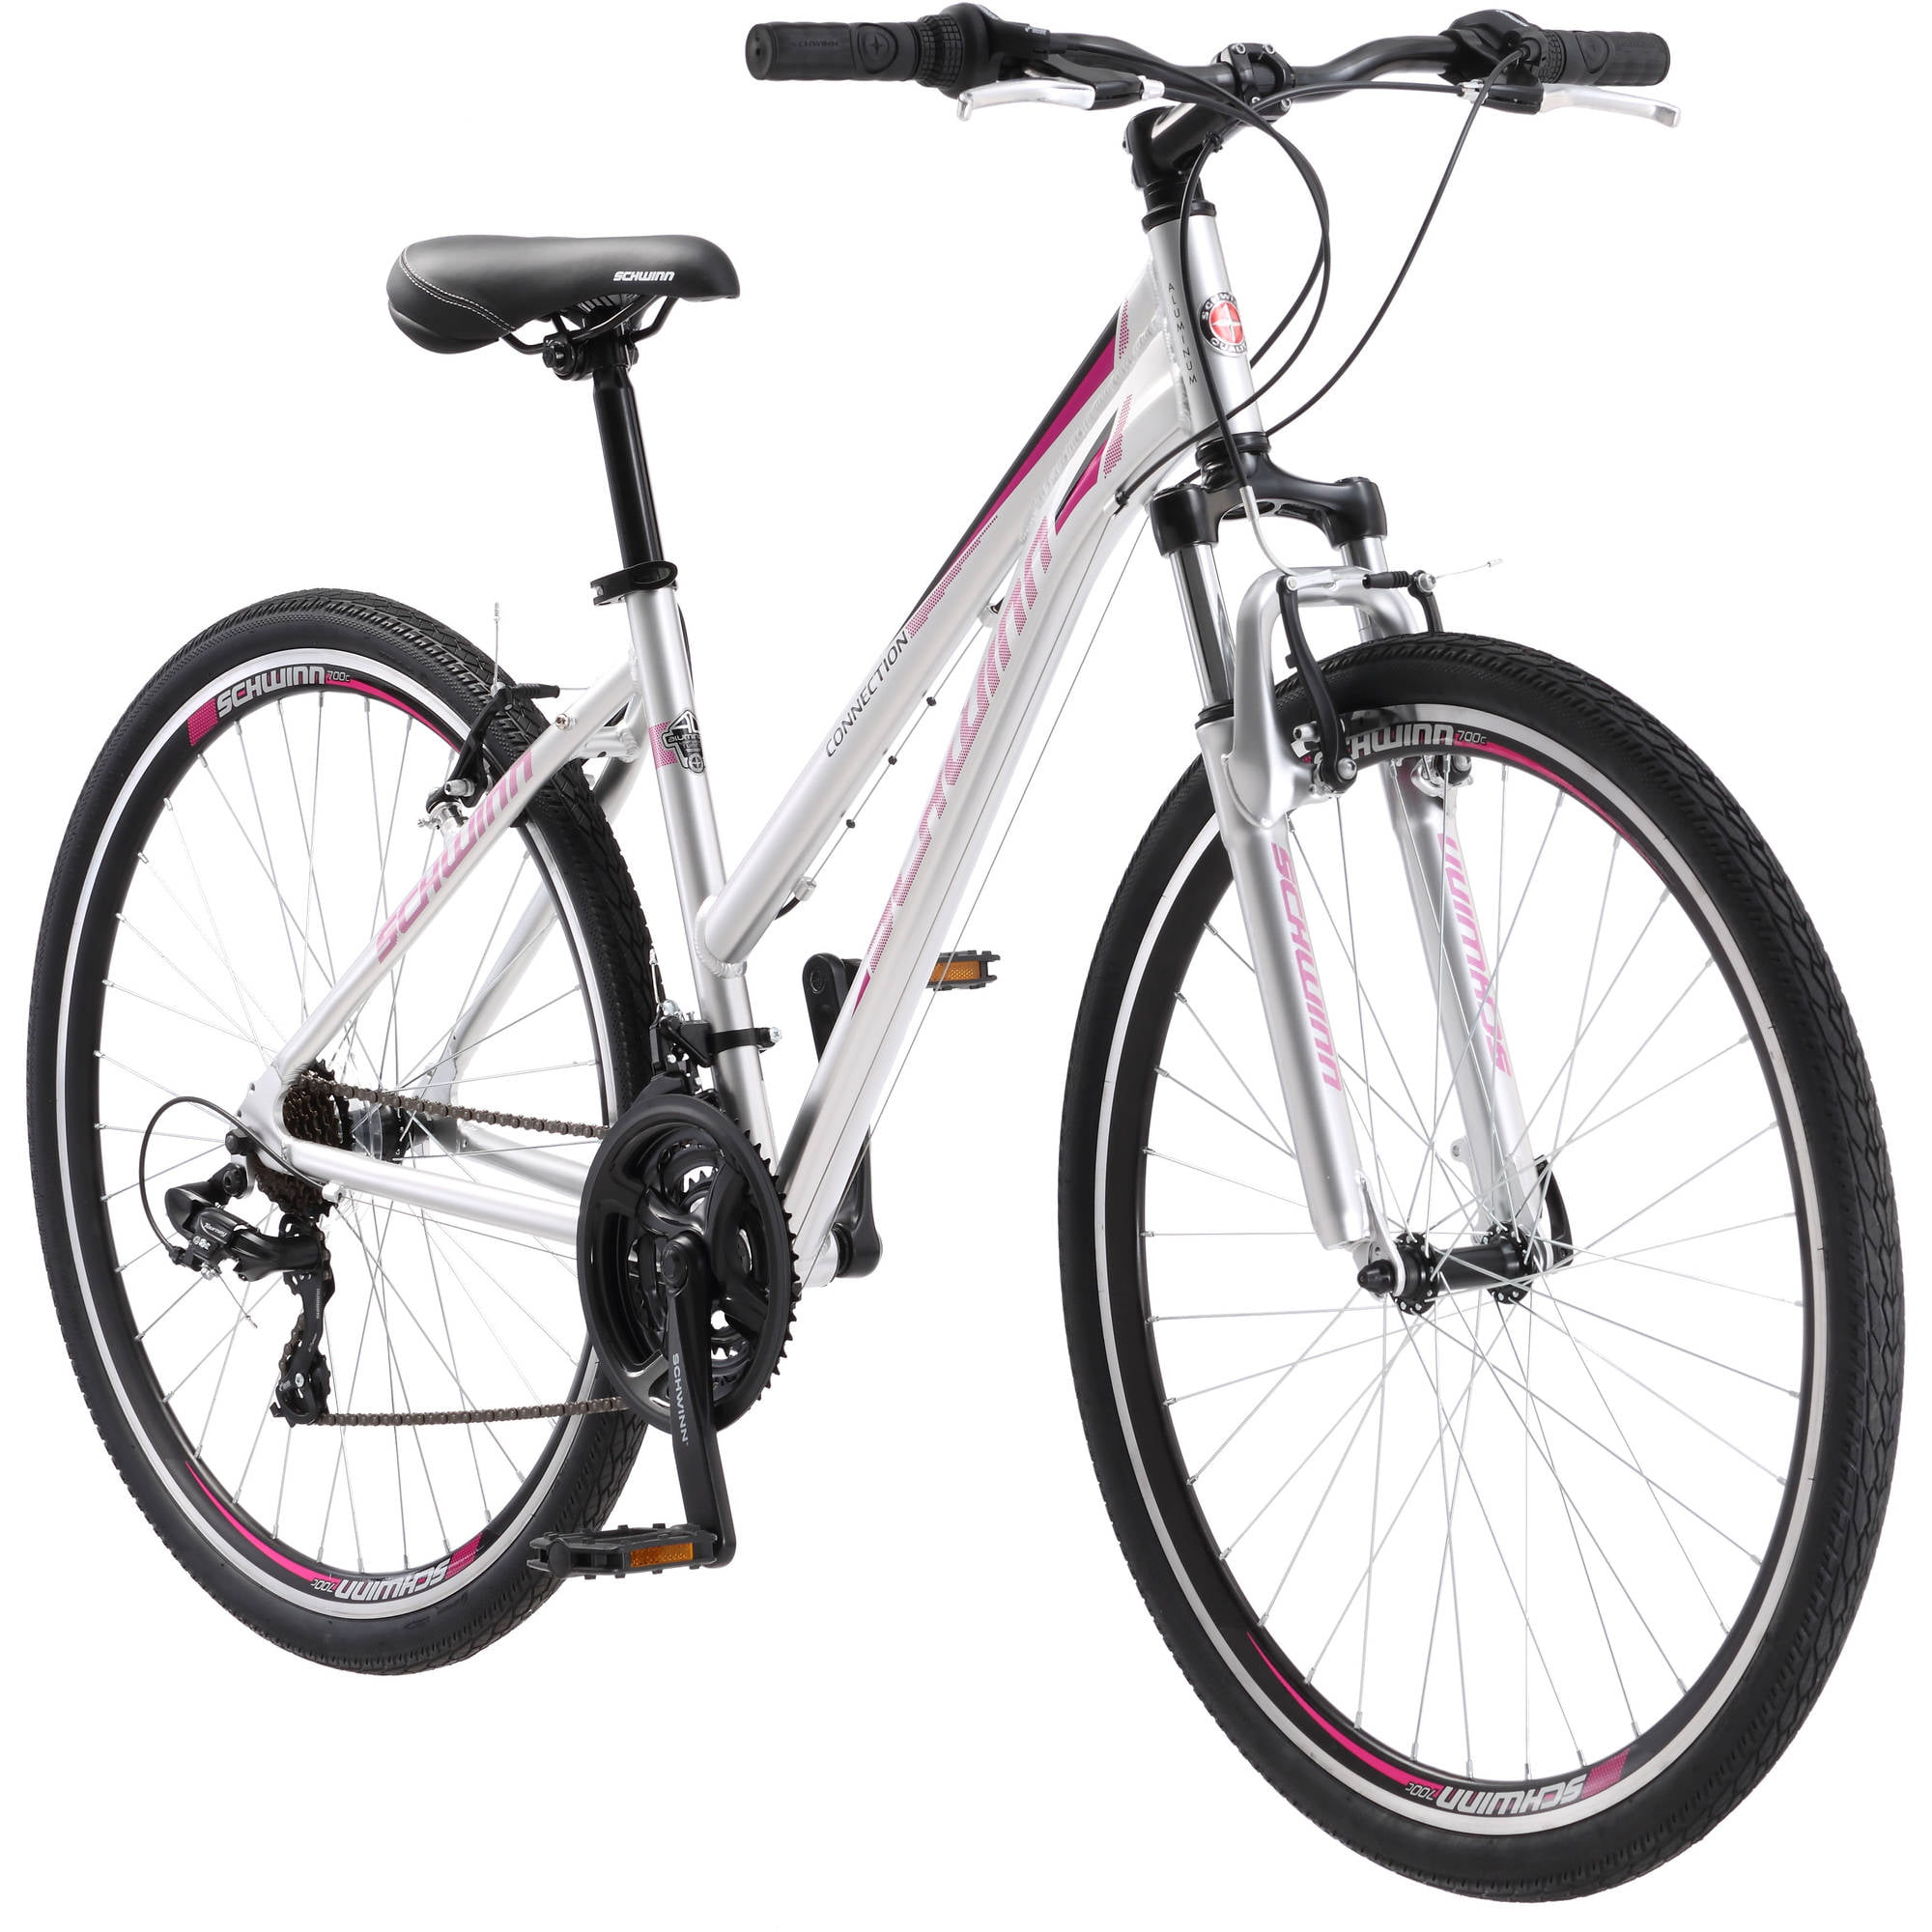 700C Schwinn Connection Women's Multi-Use Bike, Silver by Pacific Cycle